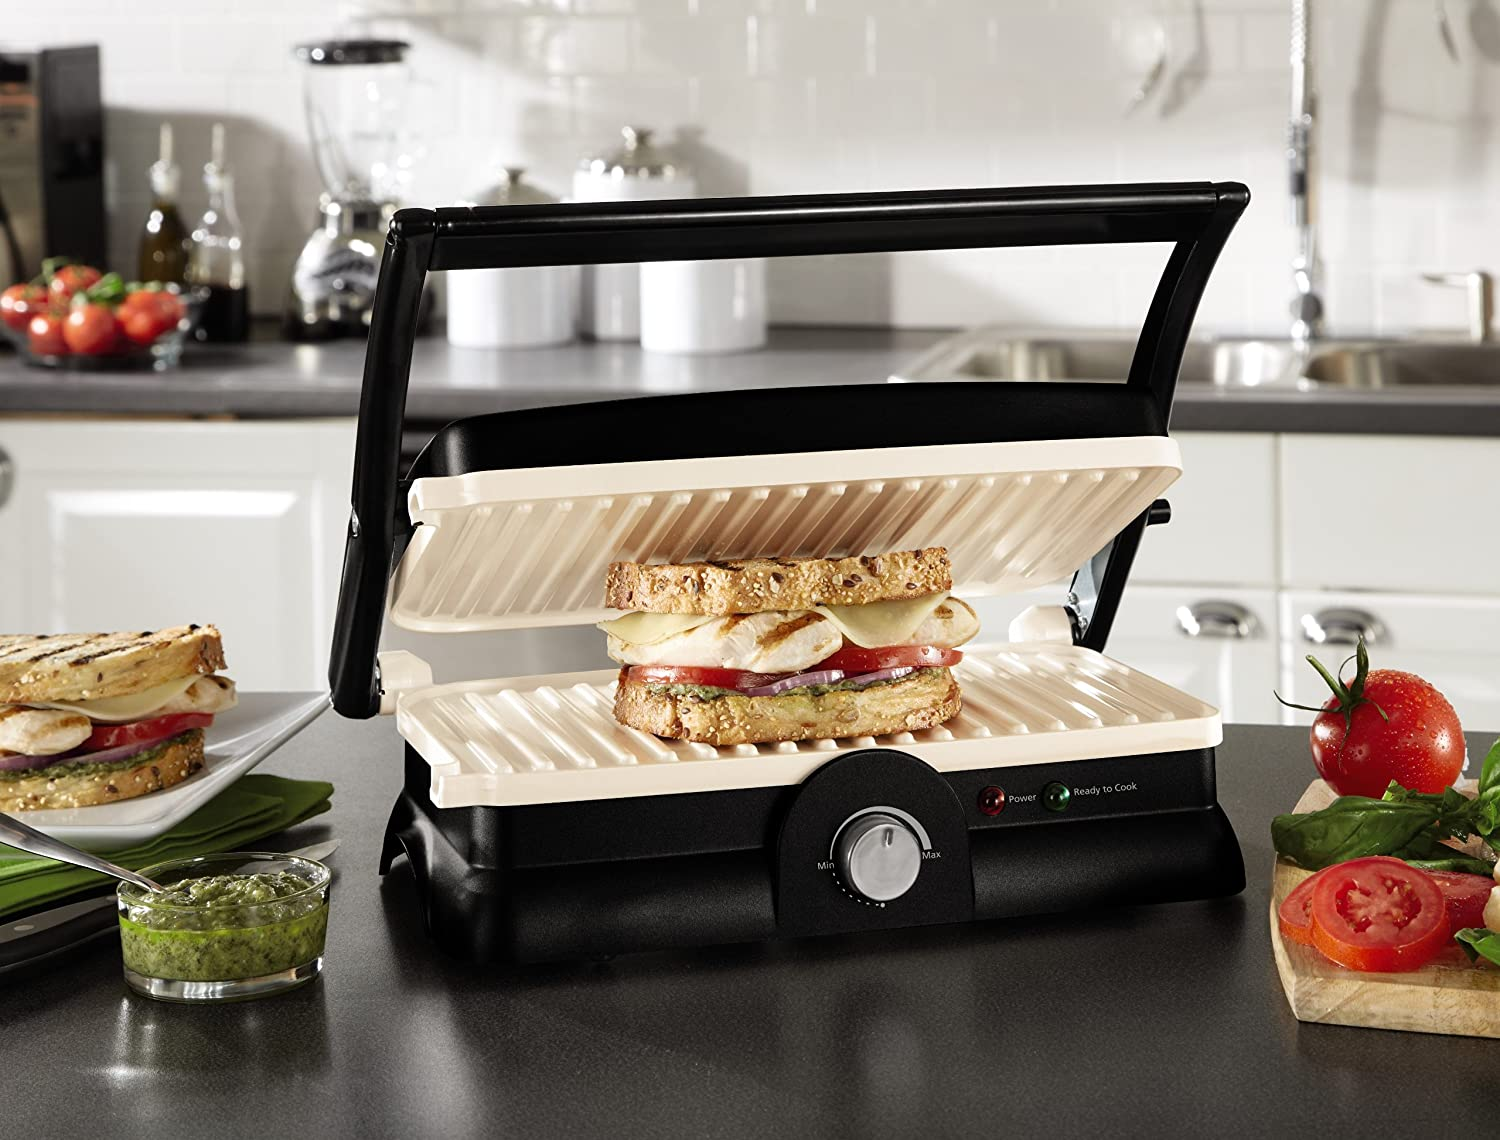 Electric Sandwich Makers : Electric grill sandwich panini maker griddle warmer